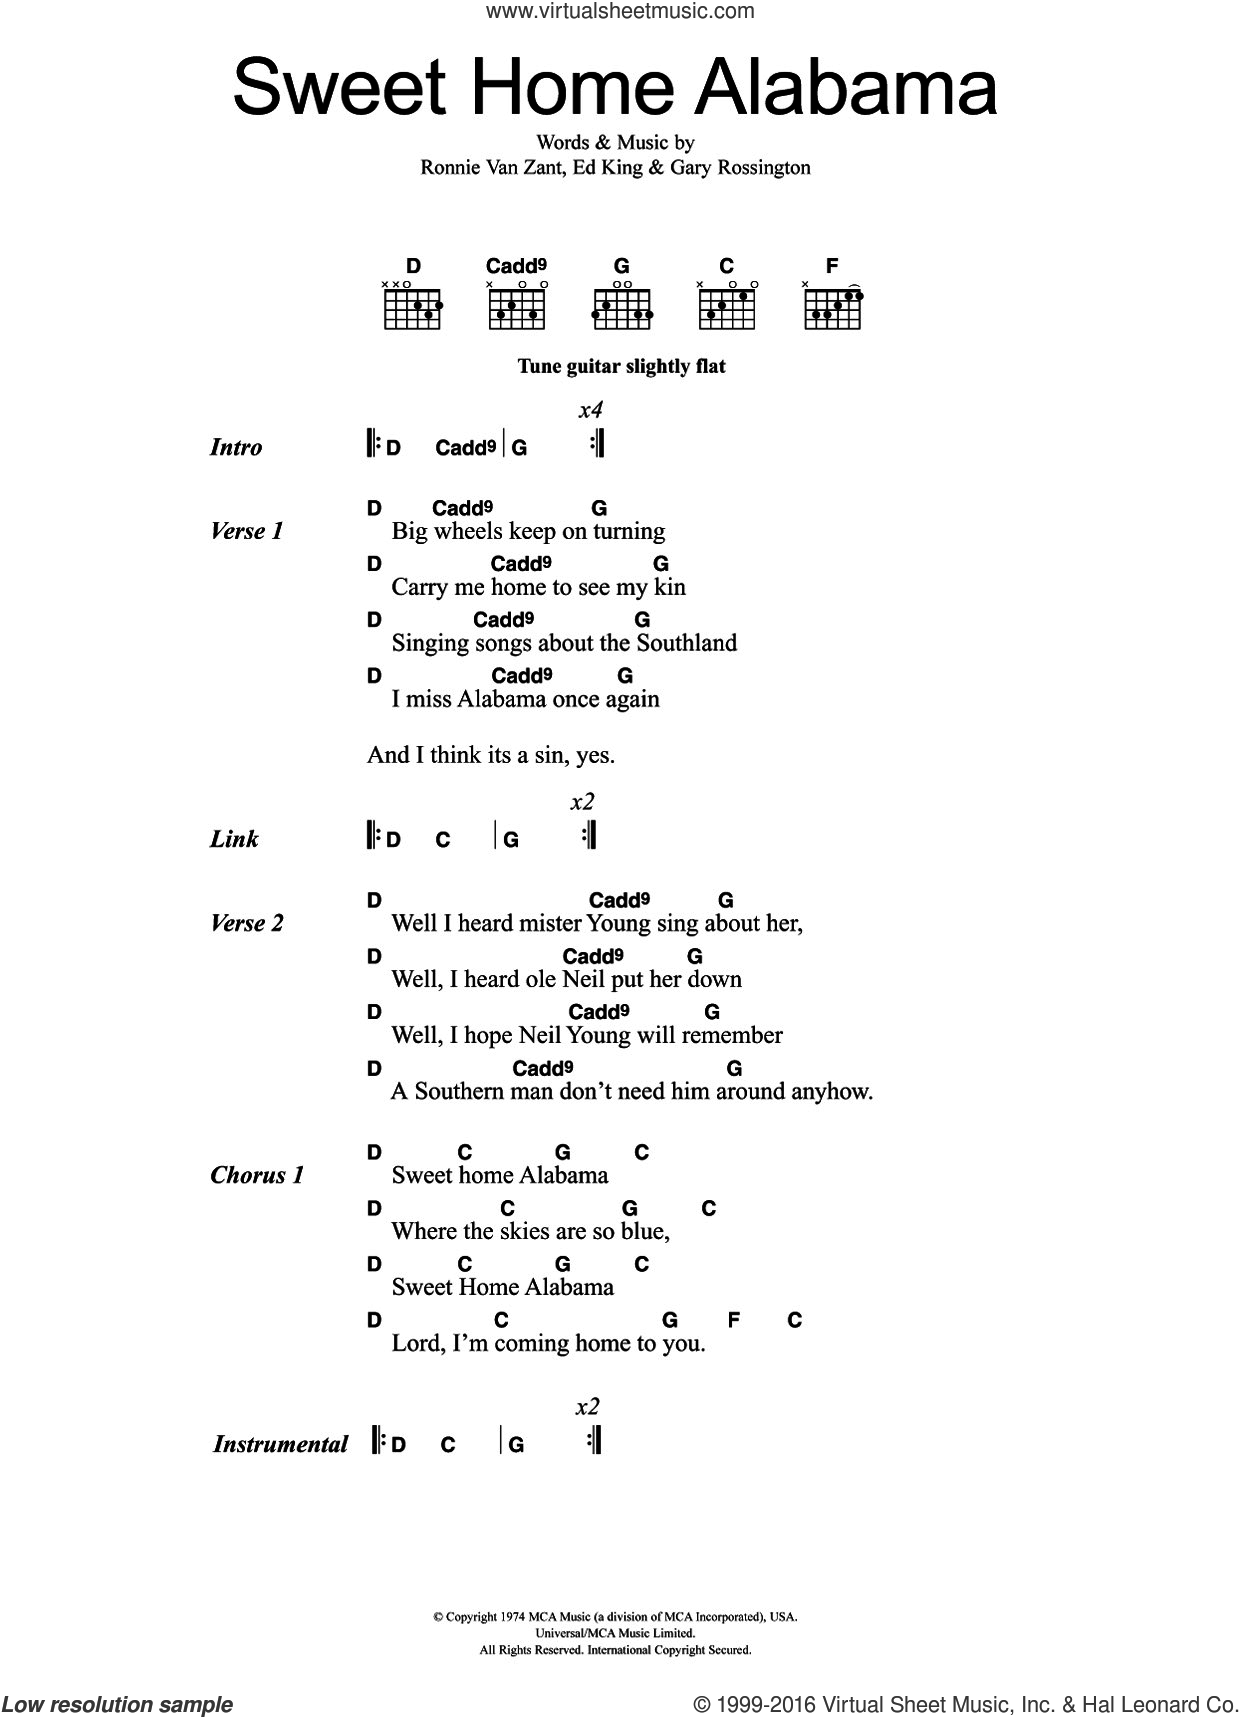 Sweet Home Alabama sheet music for guitar (chords) by Ronnie Van Zant, Lynyrd Skynyrd, Edward King and Gary Rossington. Score Image Preview.